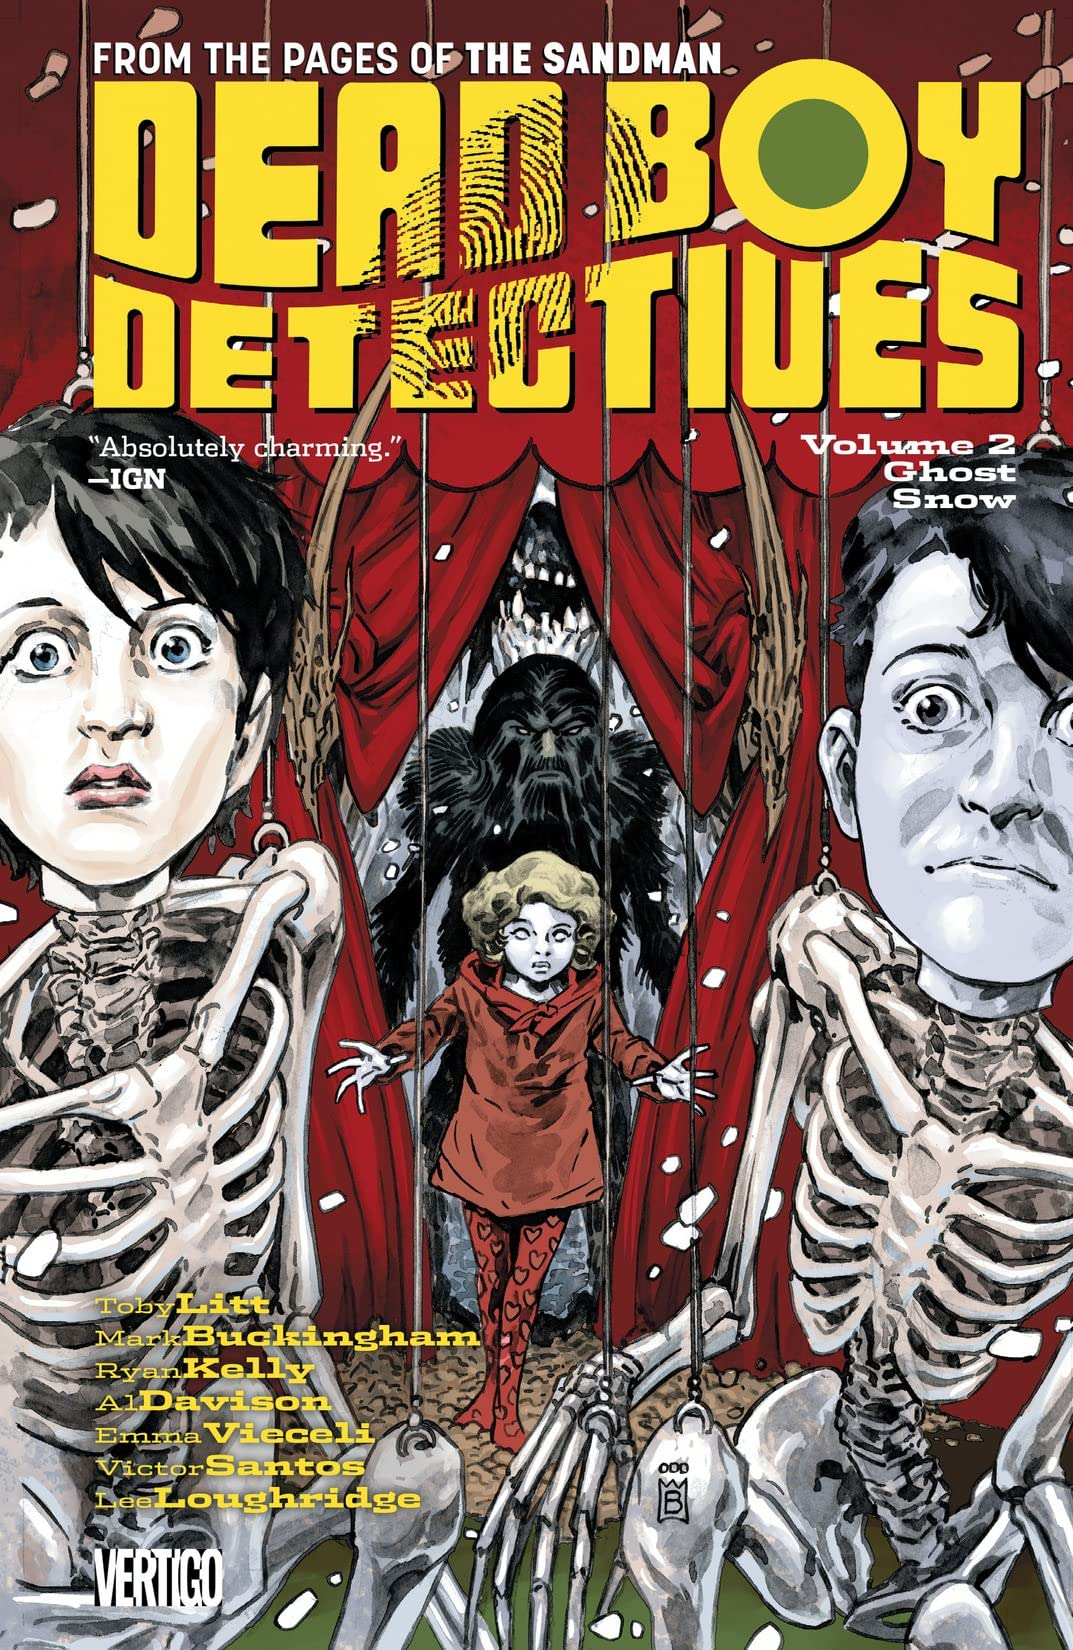 The Dead Boy Detectives (2013-2014) Vol. 2: Ghost Snow